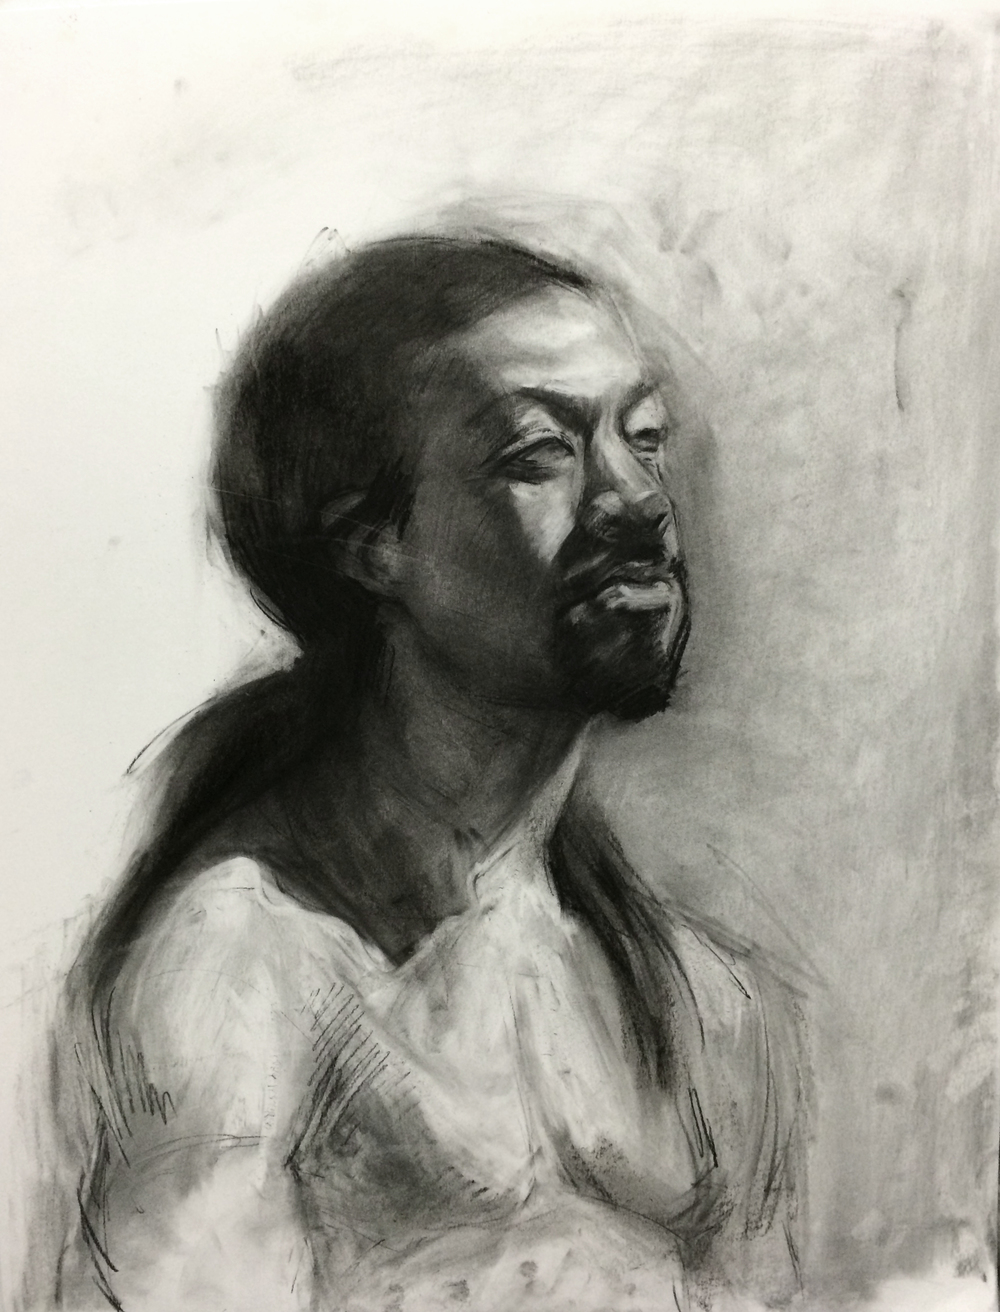 Portrait / 19x24 / Charcoal on Paper / 2015